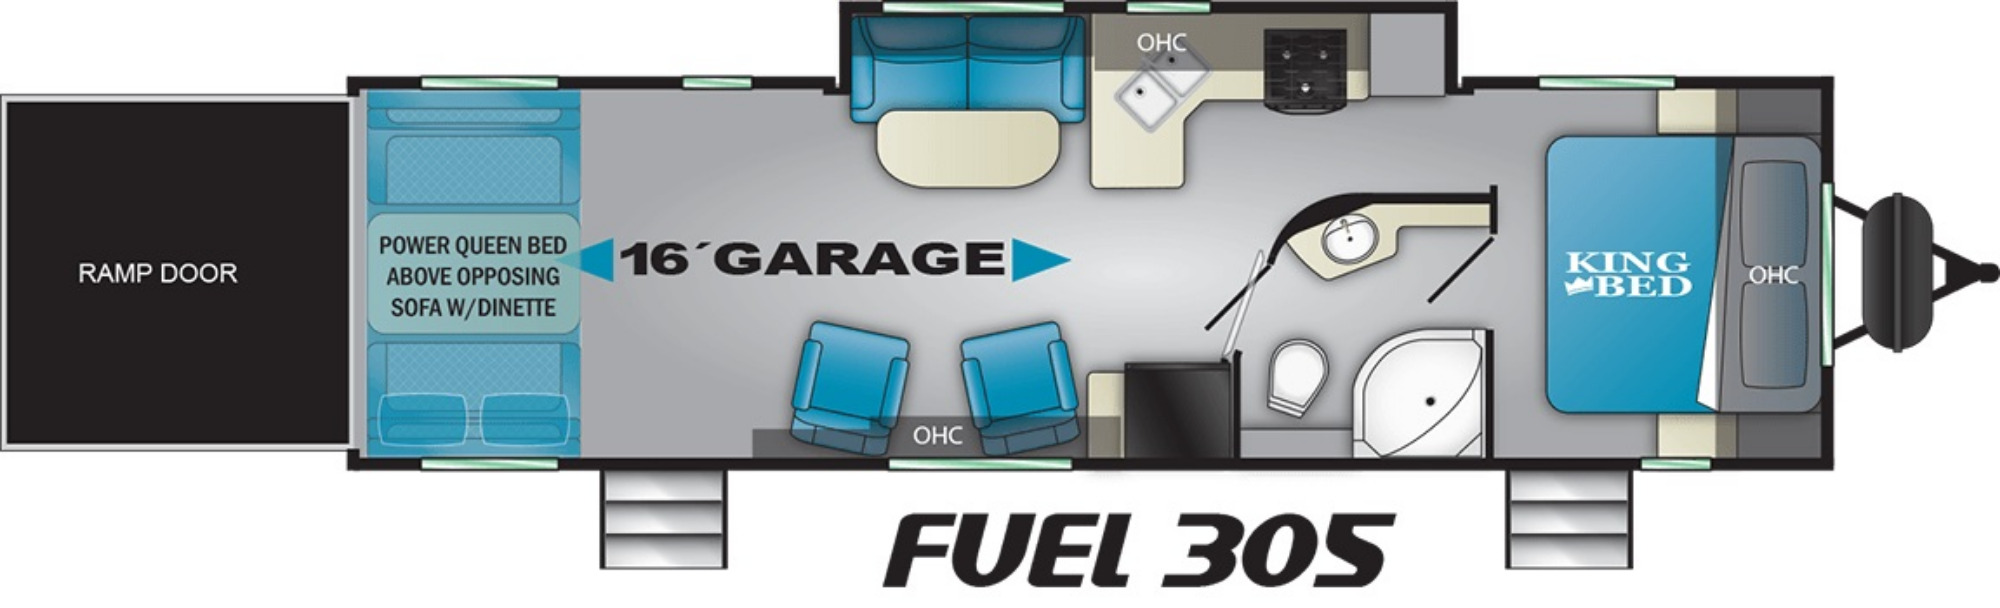 View Floor Plan for 2020 HEARTLAND FUEL 305